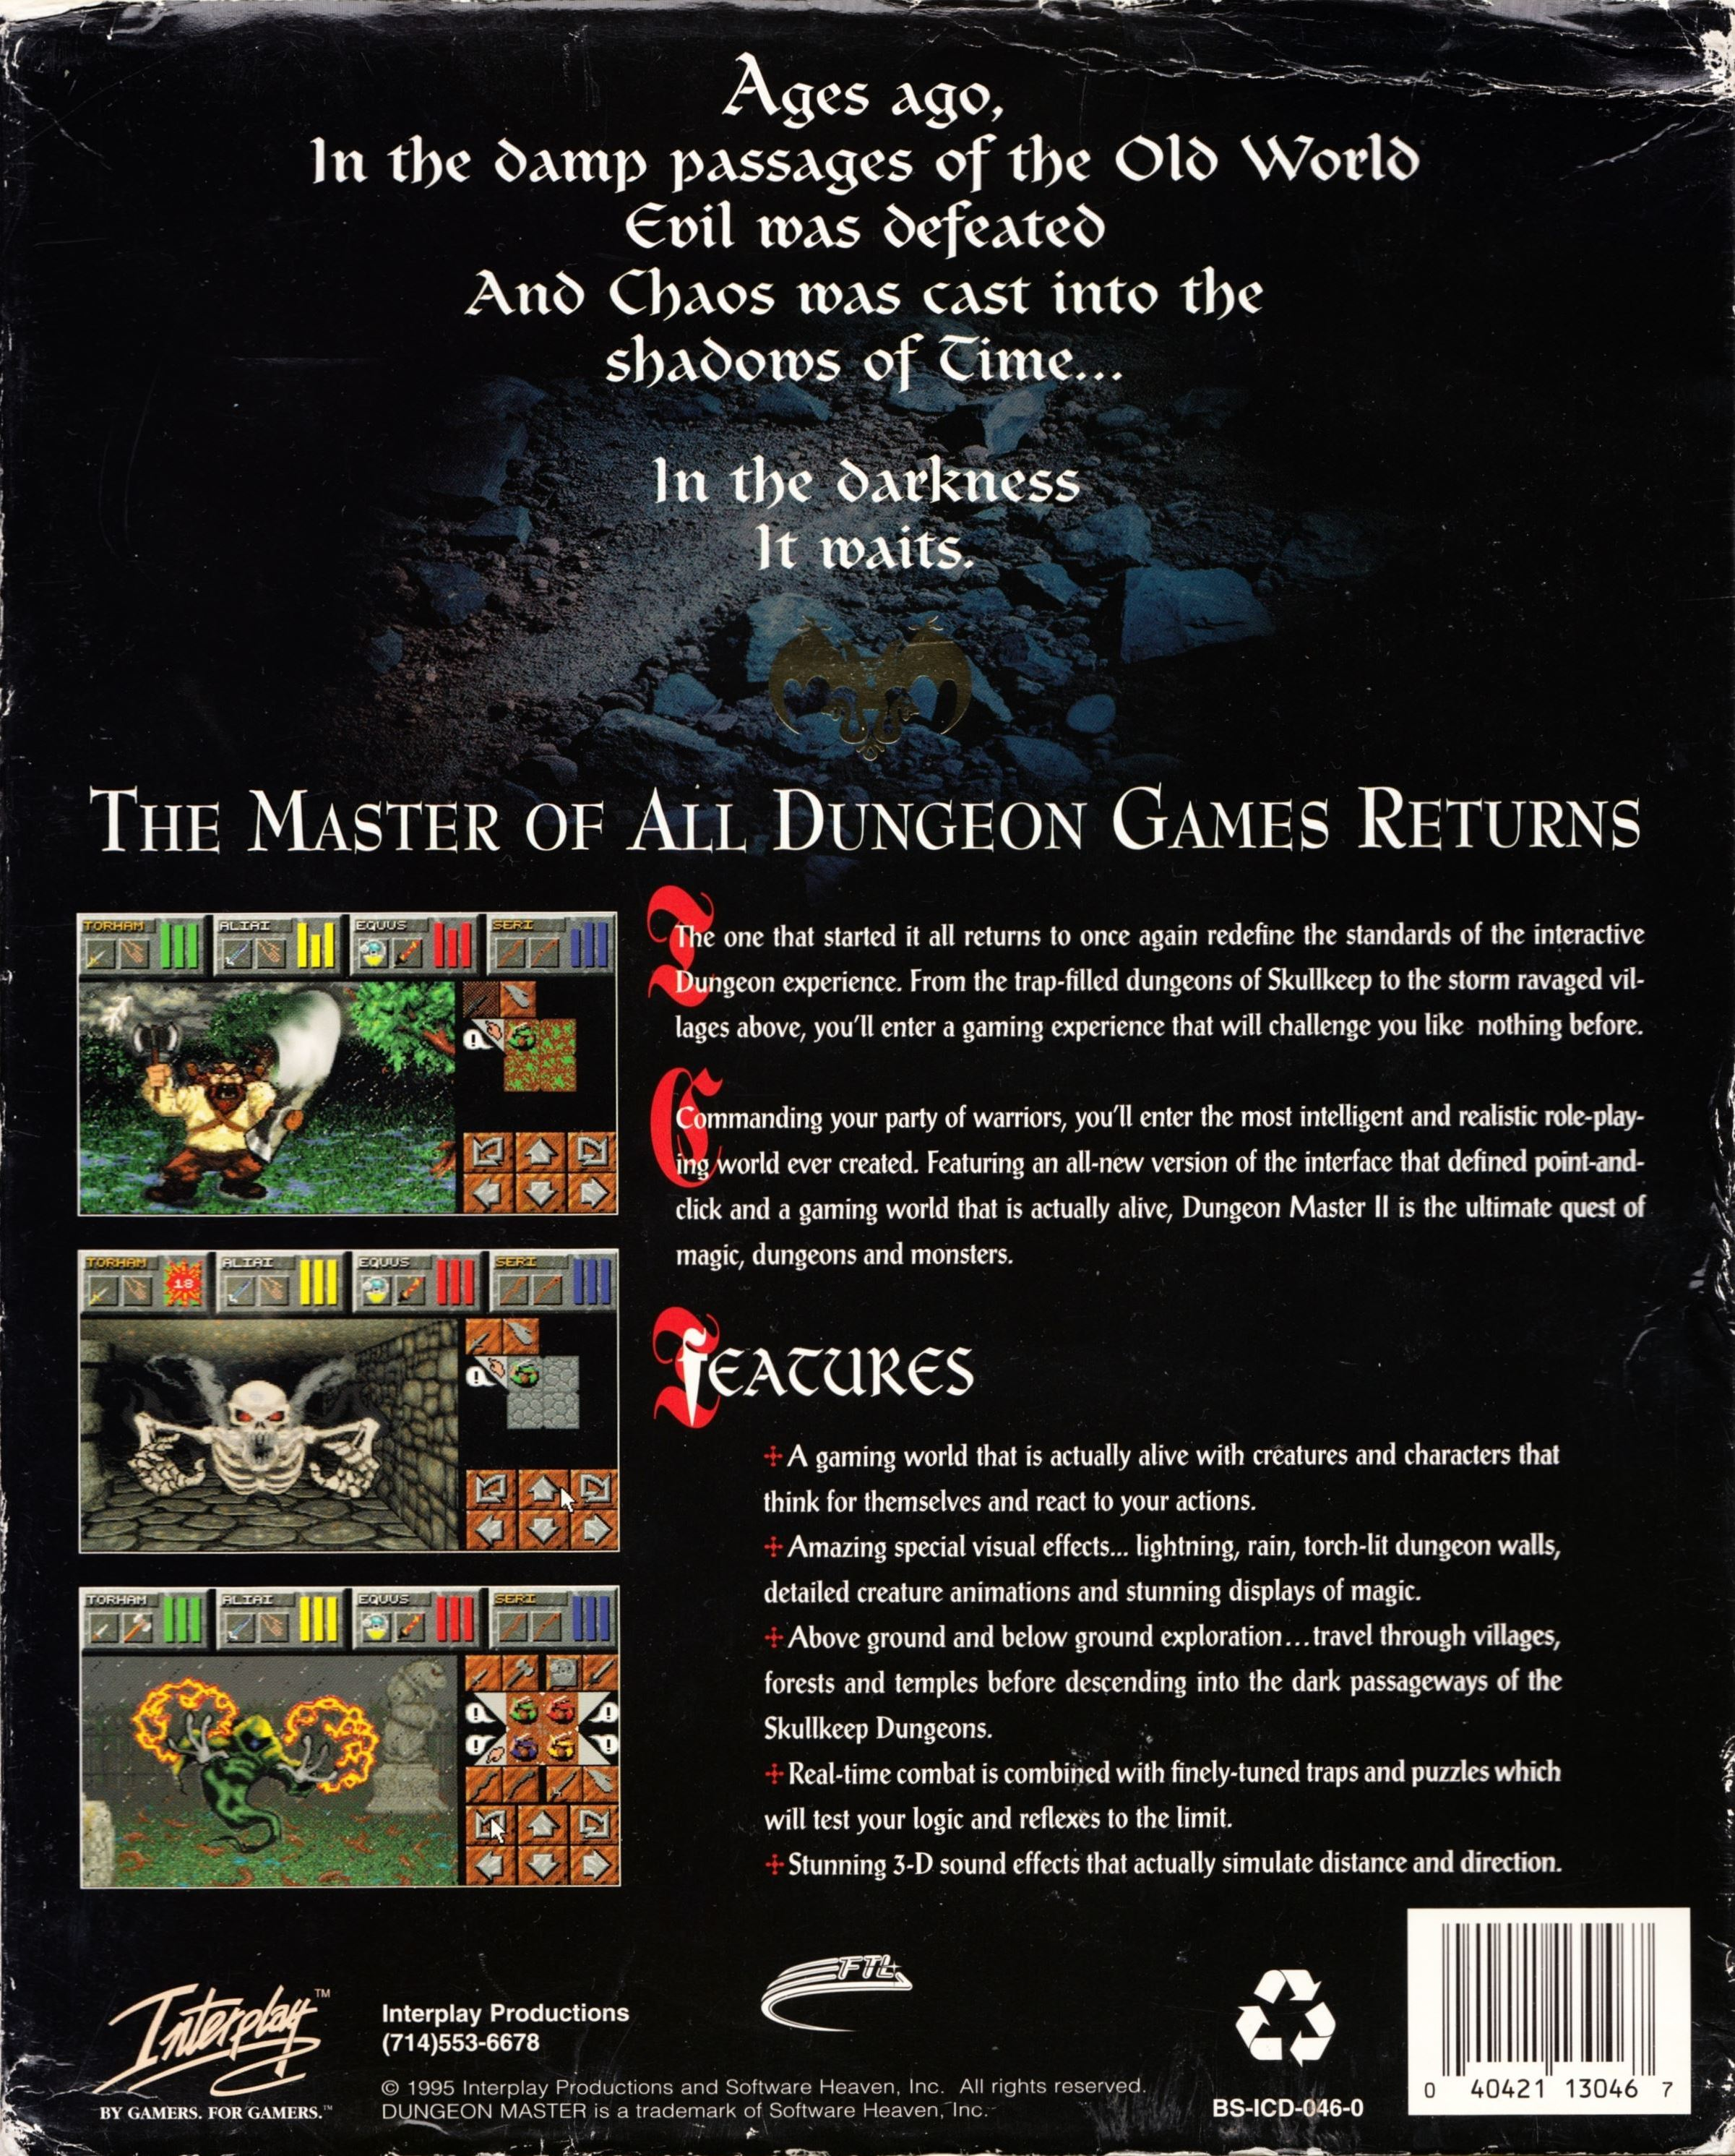 Game - Dungeon Master II - US - PC - Big Box RSAC - Box Sleeve - Back - Scan